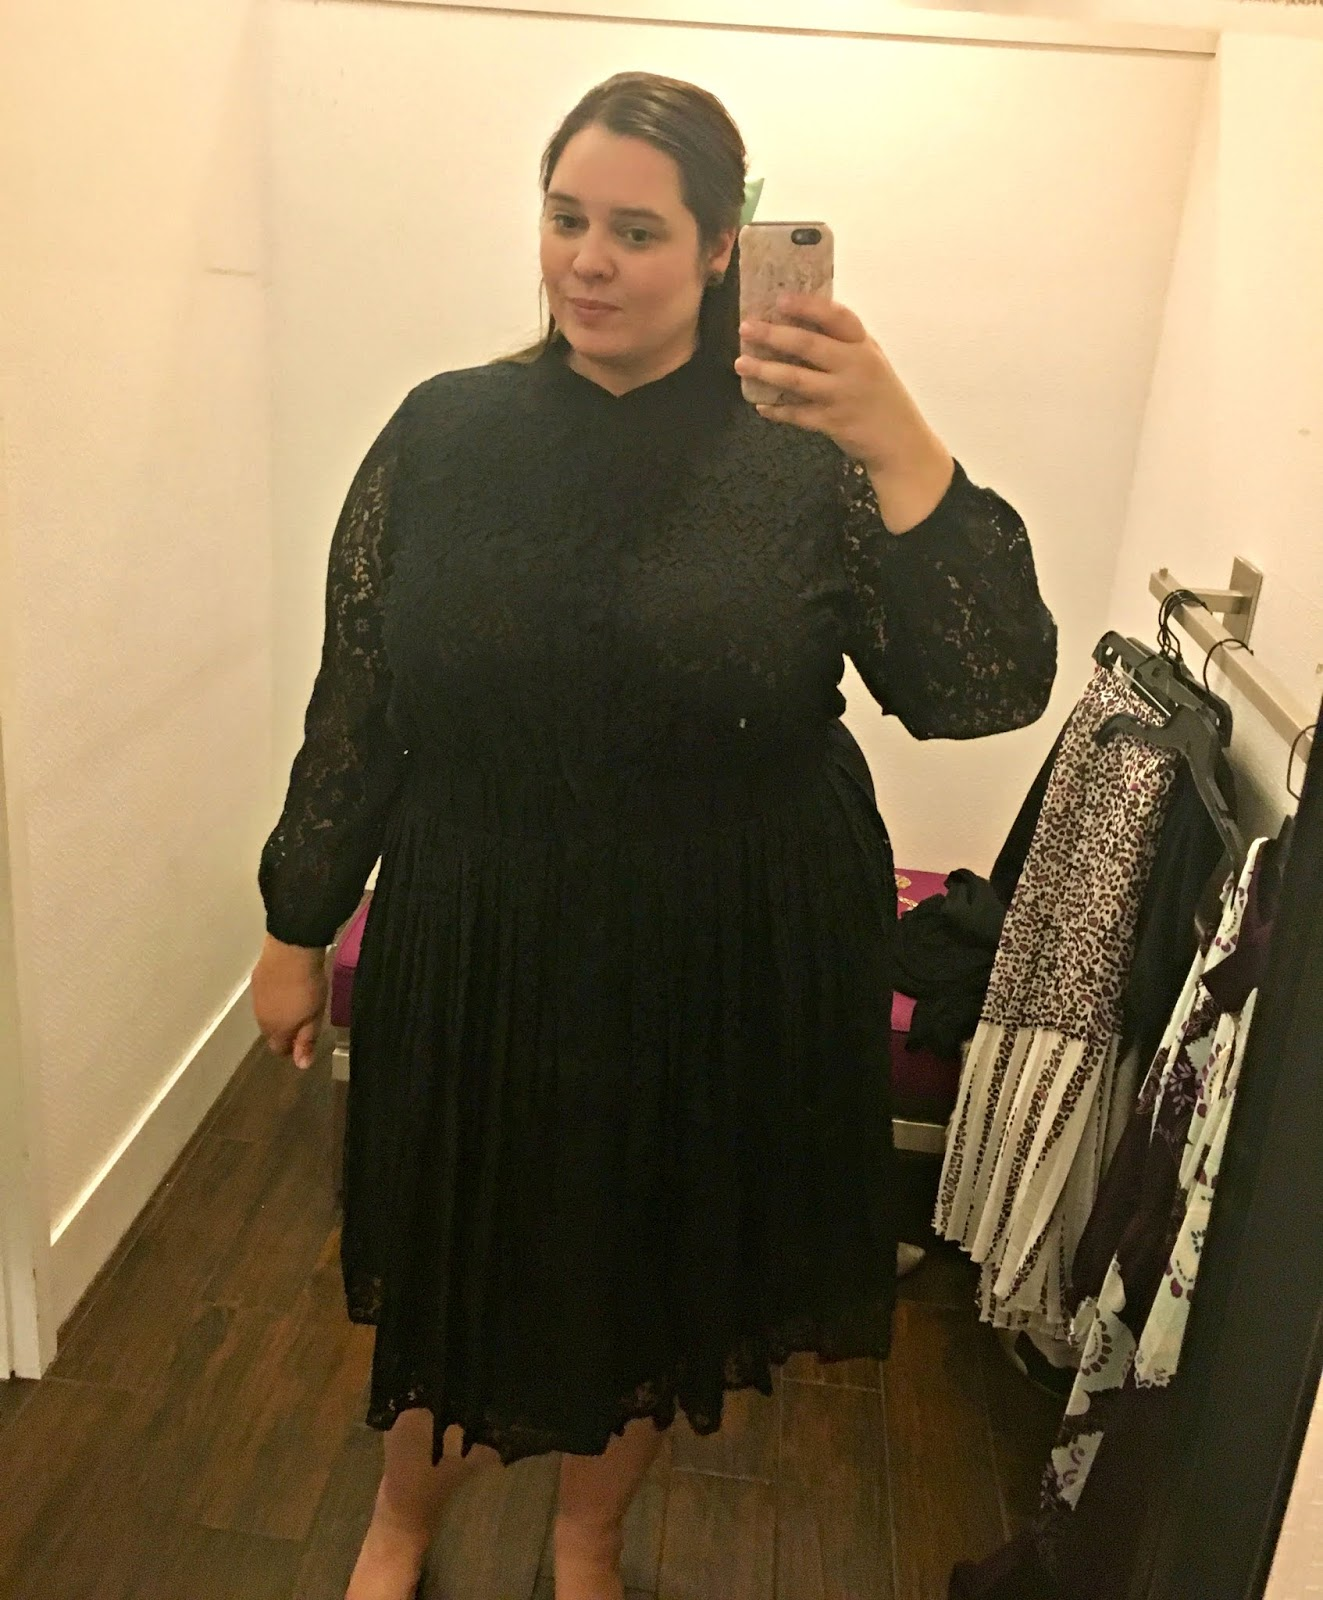 869dd107dda The pleated lace black dress had a nice fit and I like how instead of a  plain elastic waist it had a faux belt look. I think this dress would look  waaaaay ...